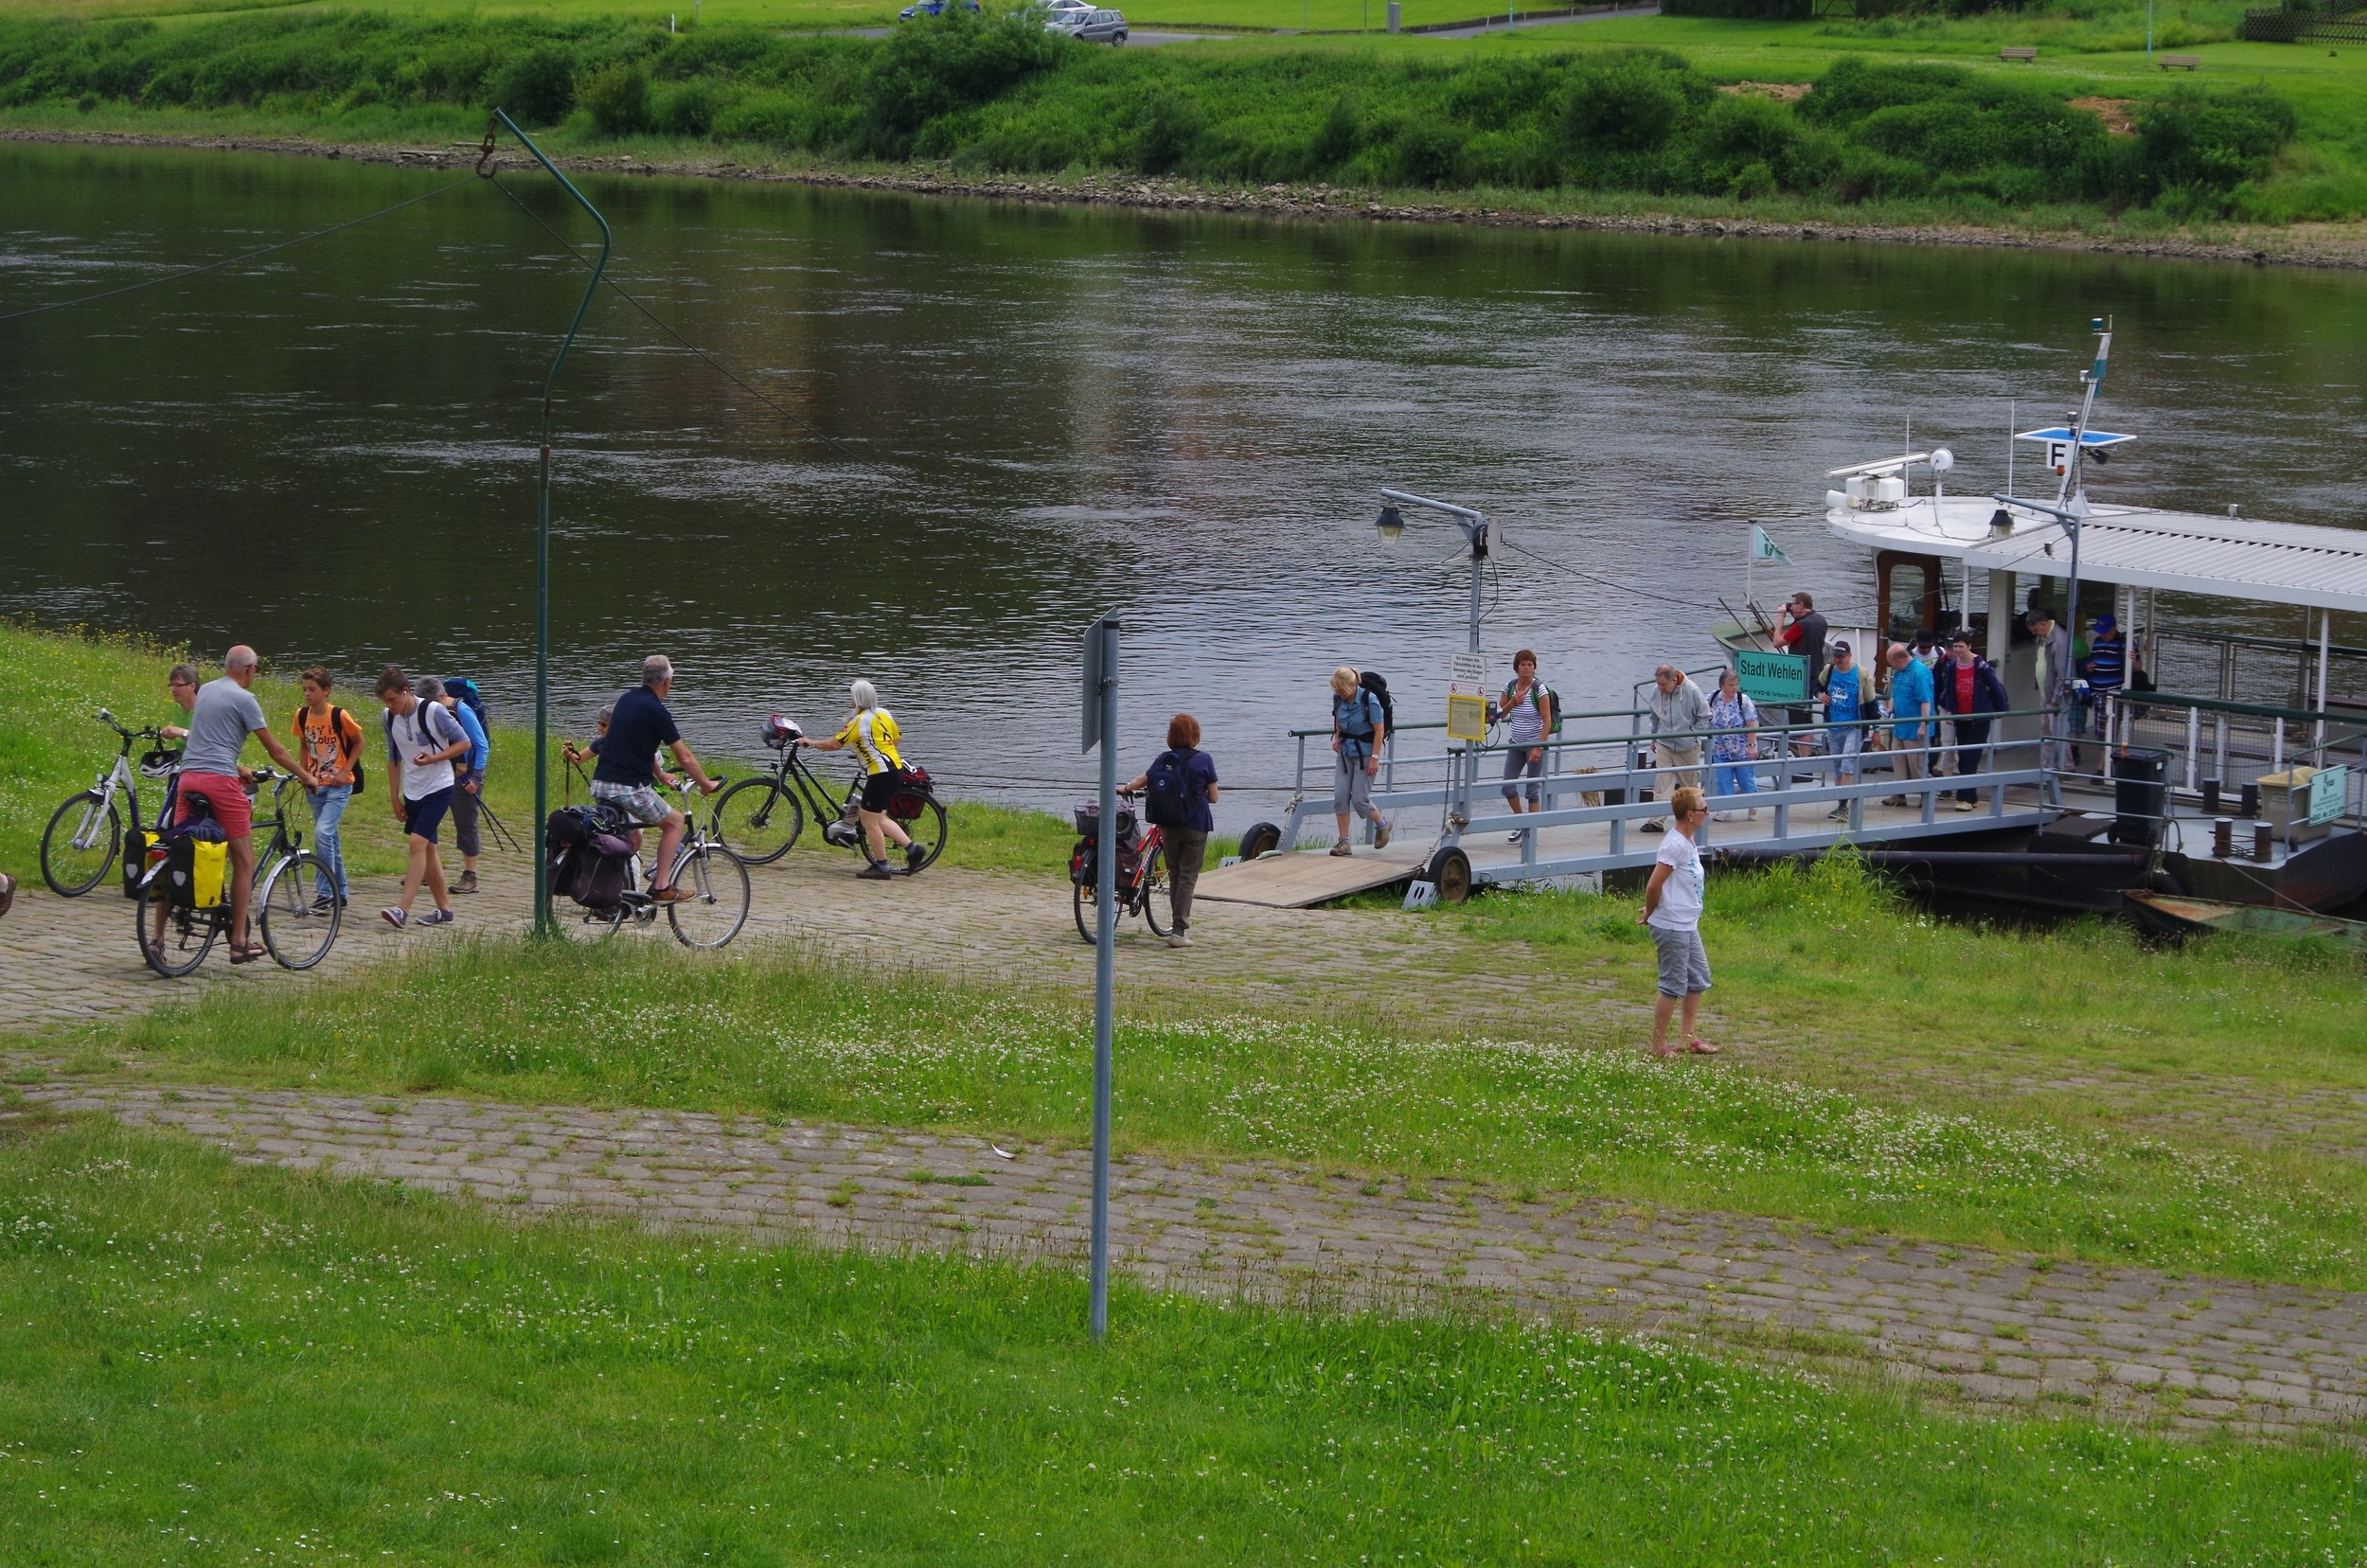 Typical ferry en route - doing good business from the hordes of cyclists